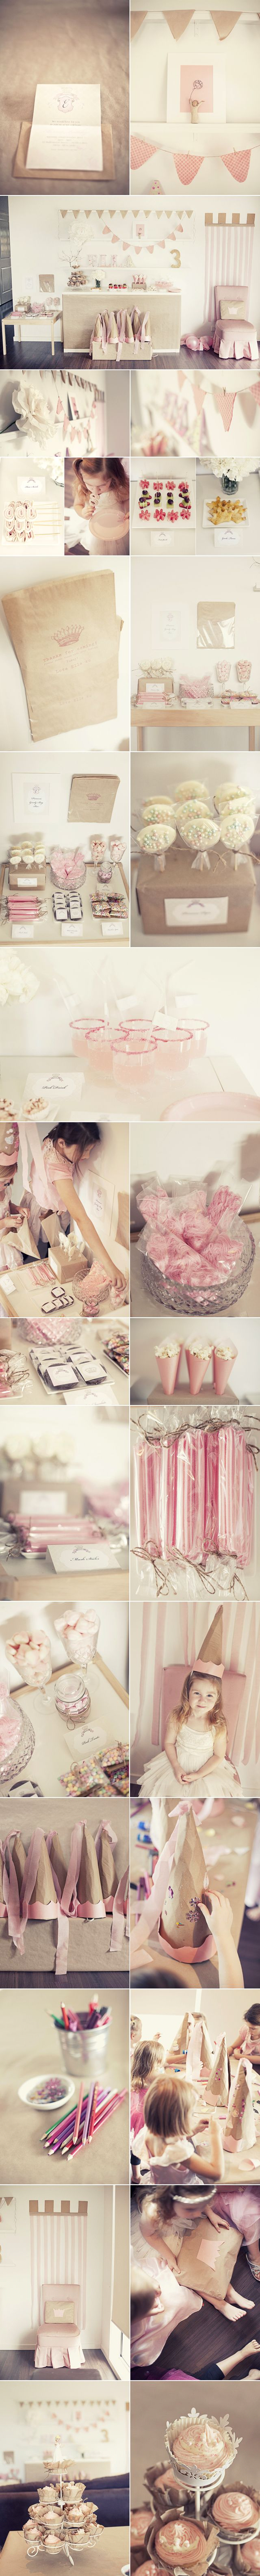 soft pink + kraft princess party...so many simple but lovely details